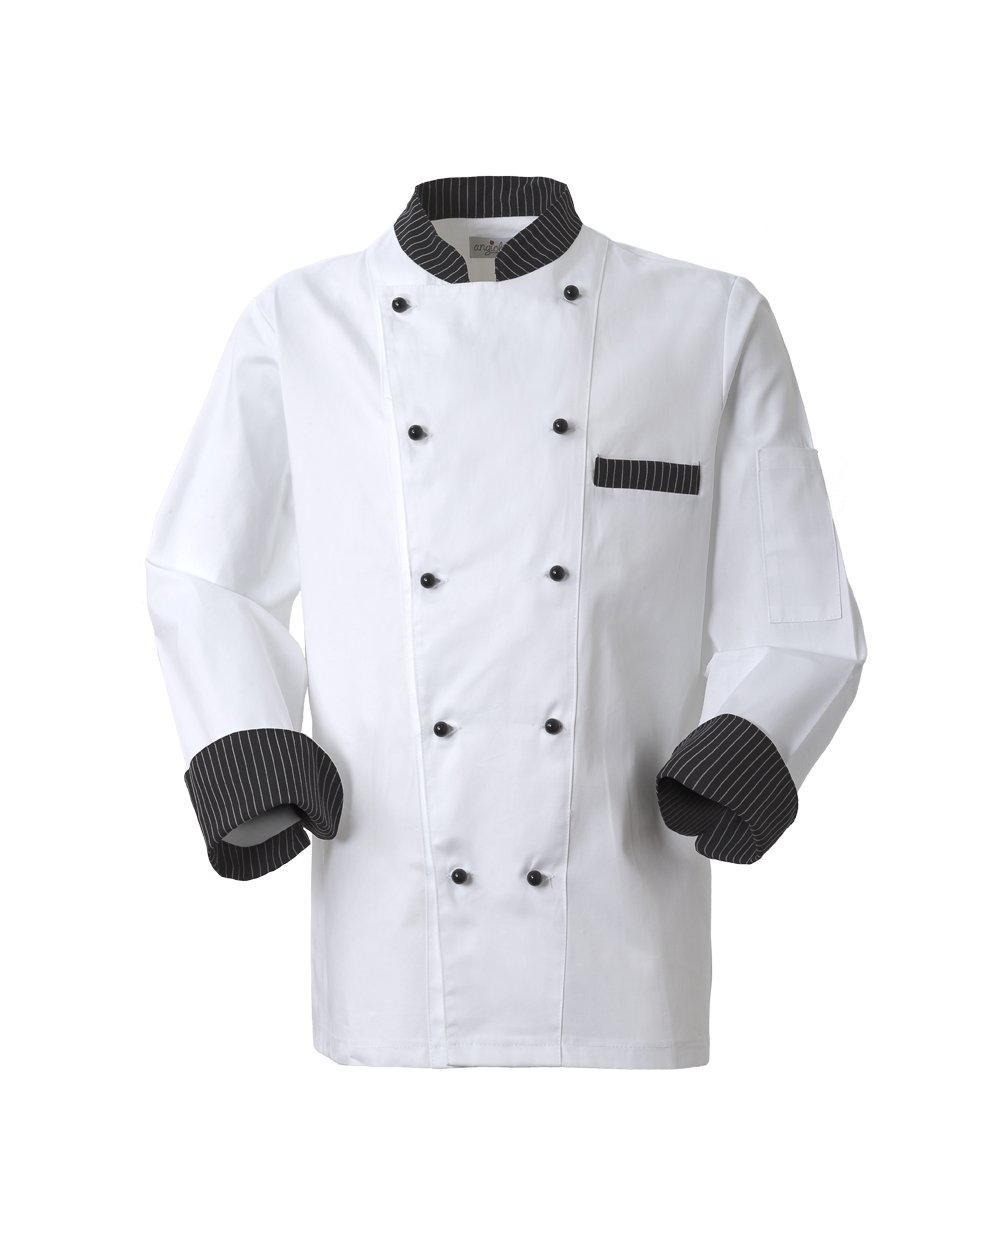 un'uniforme da chef di color bianco